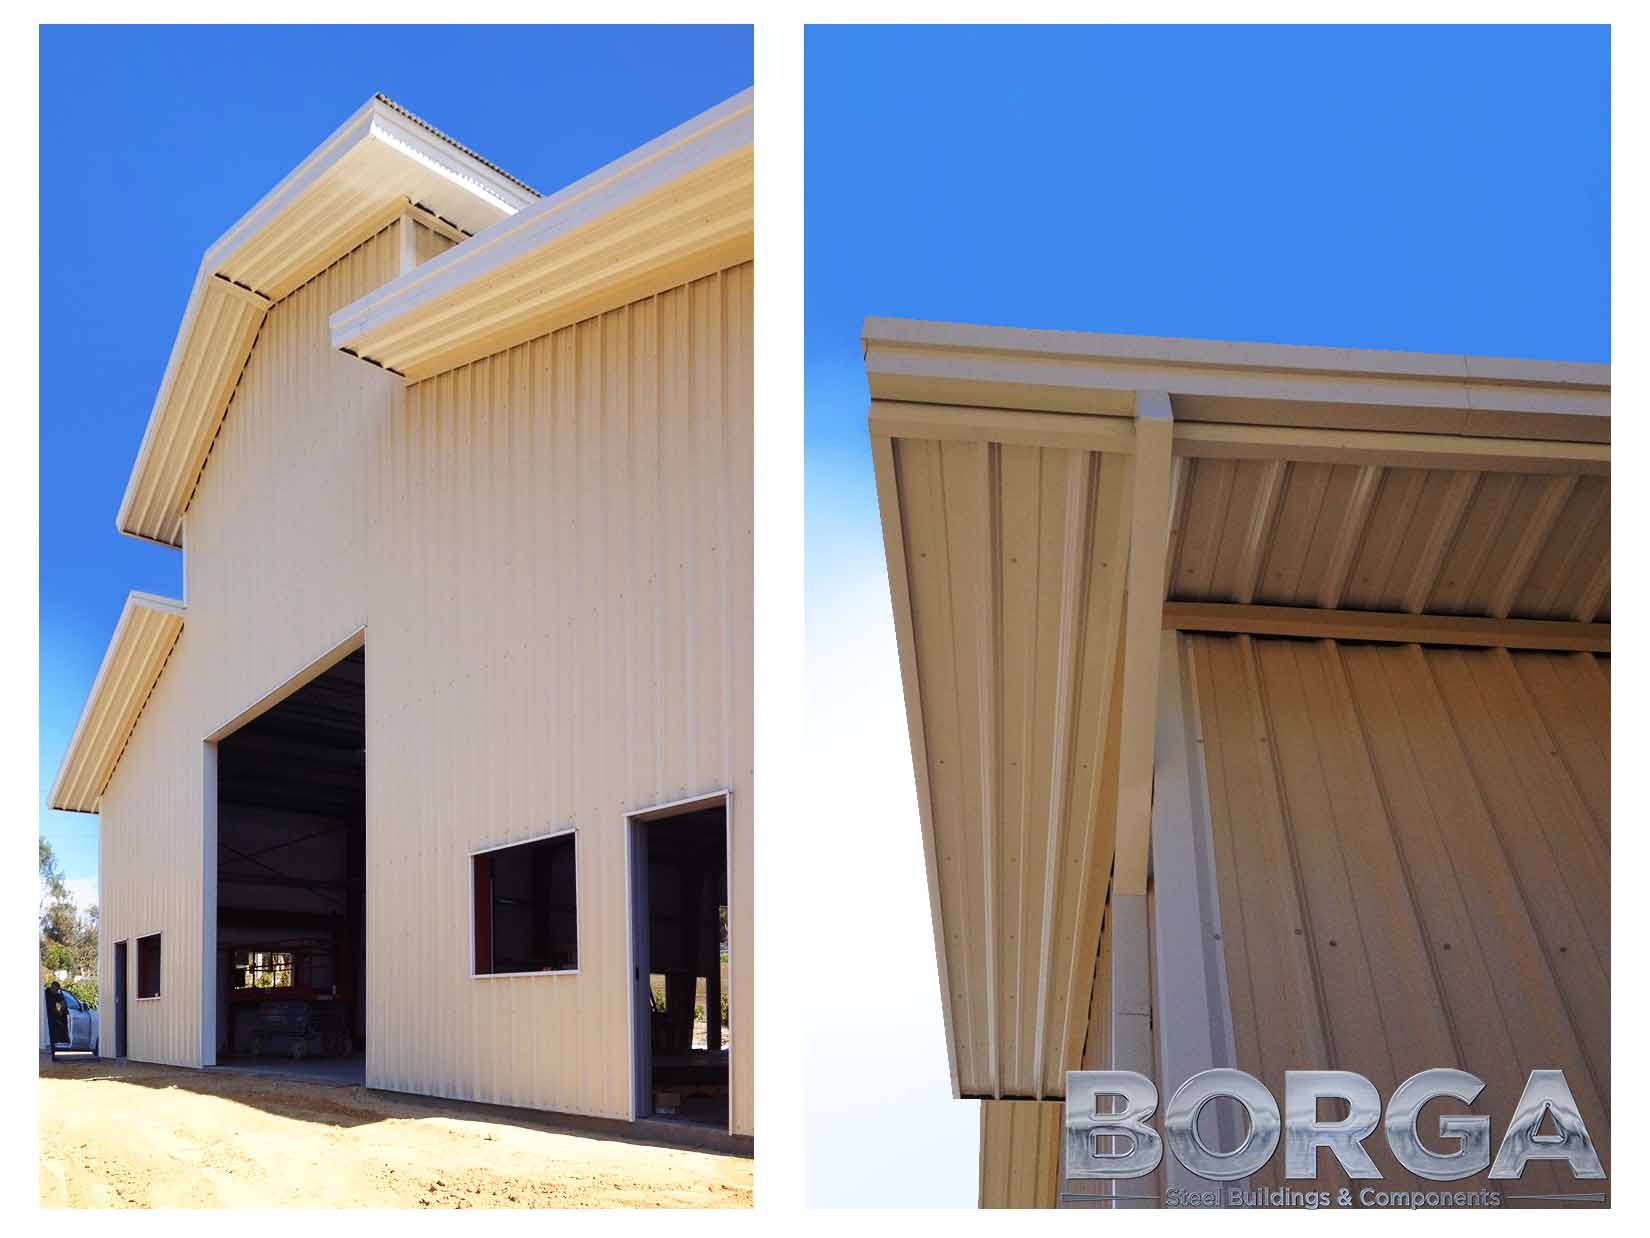 borga steel buildings components fresno california metal construction erection process contractor framing